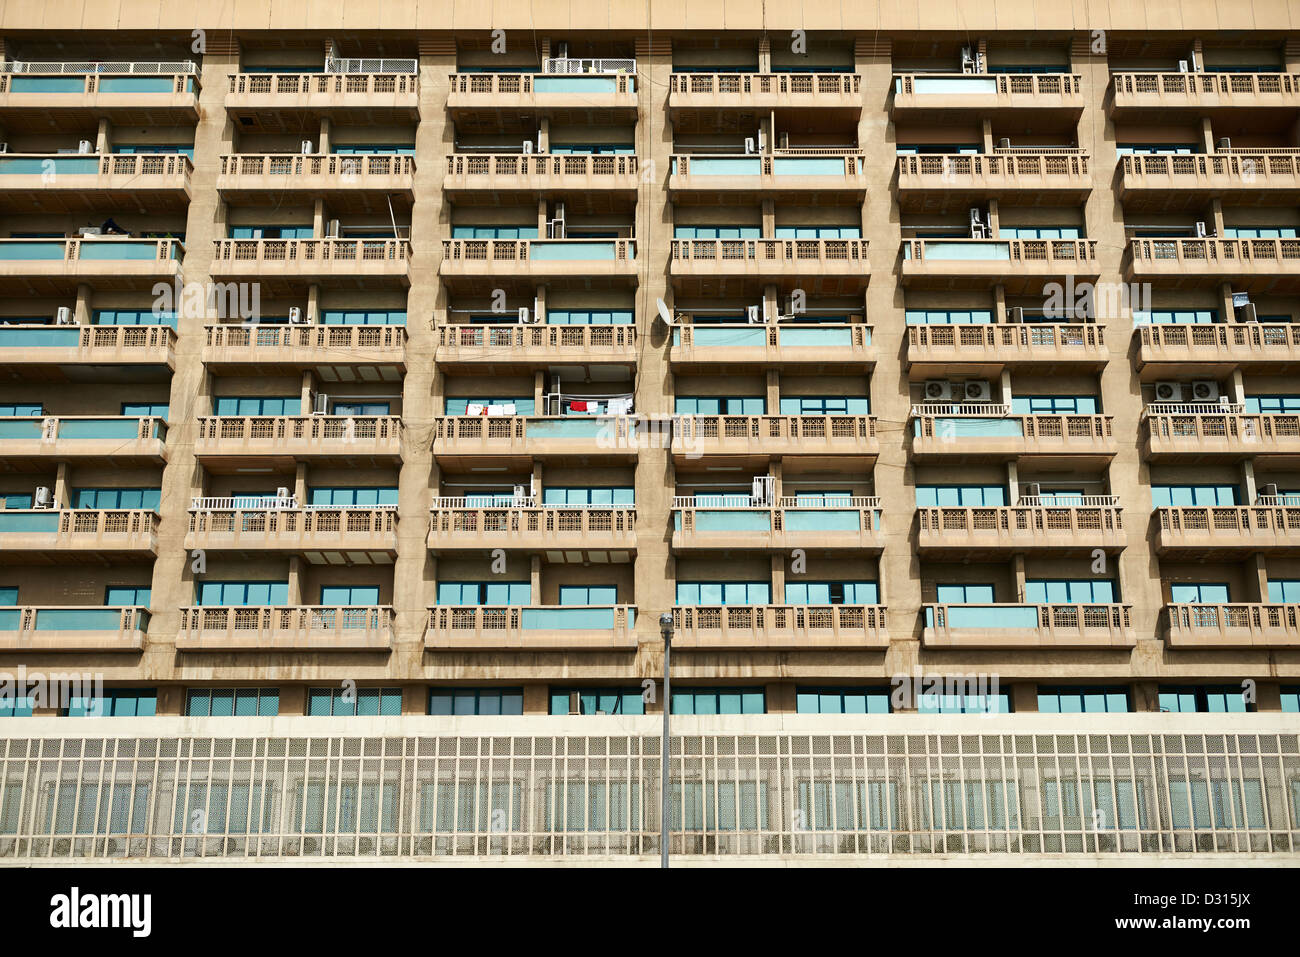 A grid of dense apartment units - Stock Image